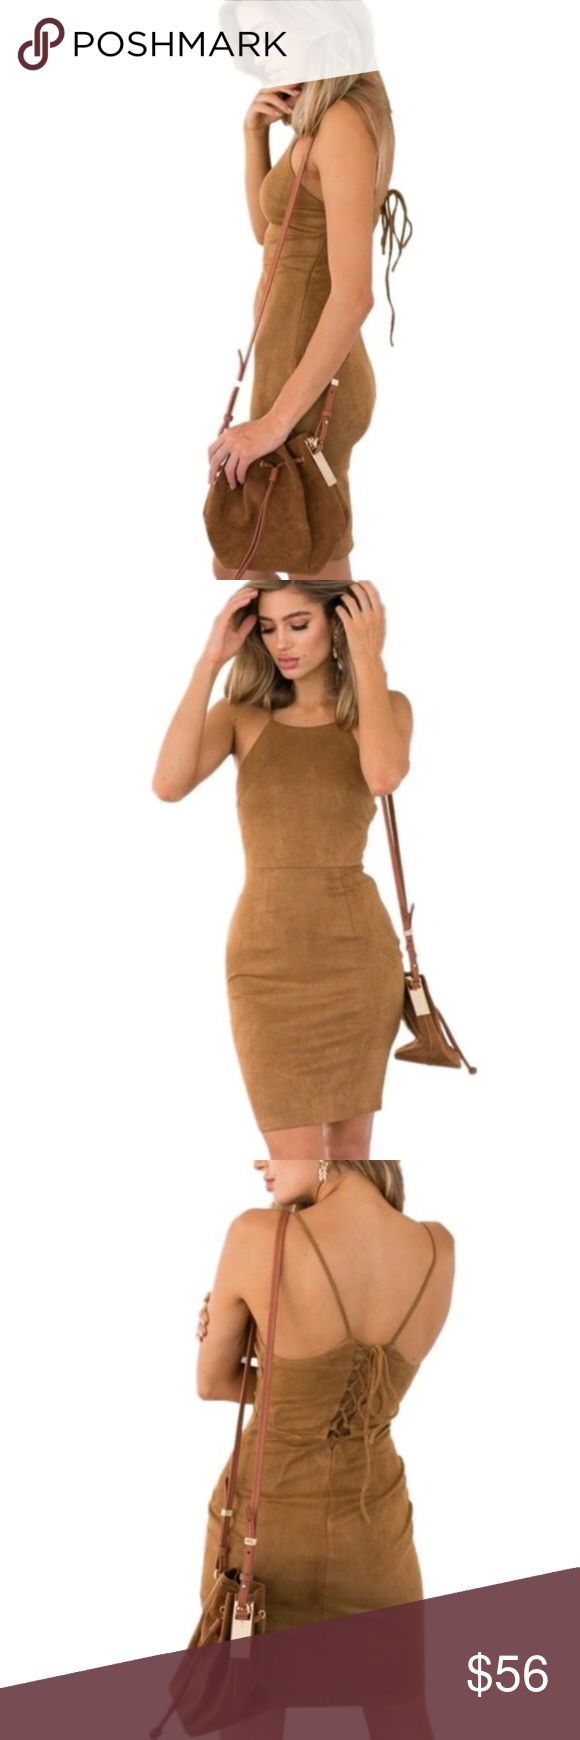 "Sexy shade bodycon dress ❤ Super cute and flirty camel Bodycon dress. Made out of acrylic and spandex materials (so it does have some stretch to it). It ties up from the back, spaghetti strap and it lands above the knee depending on ones height and body type. MEASUREMENTS: LENGTH: 29"" BUST:34"" ☺️ Dorimas Closet Dresses Midi"